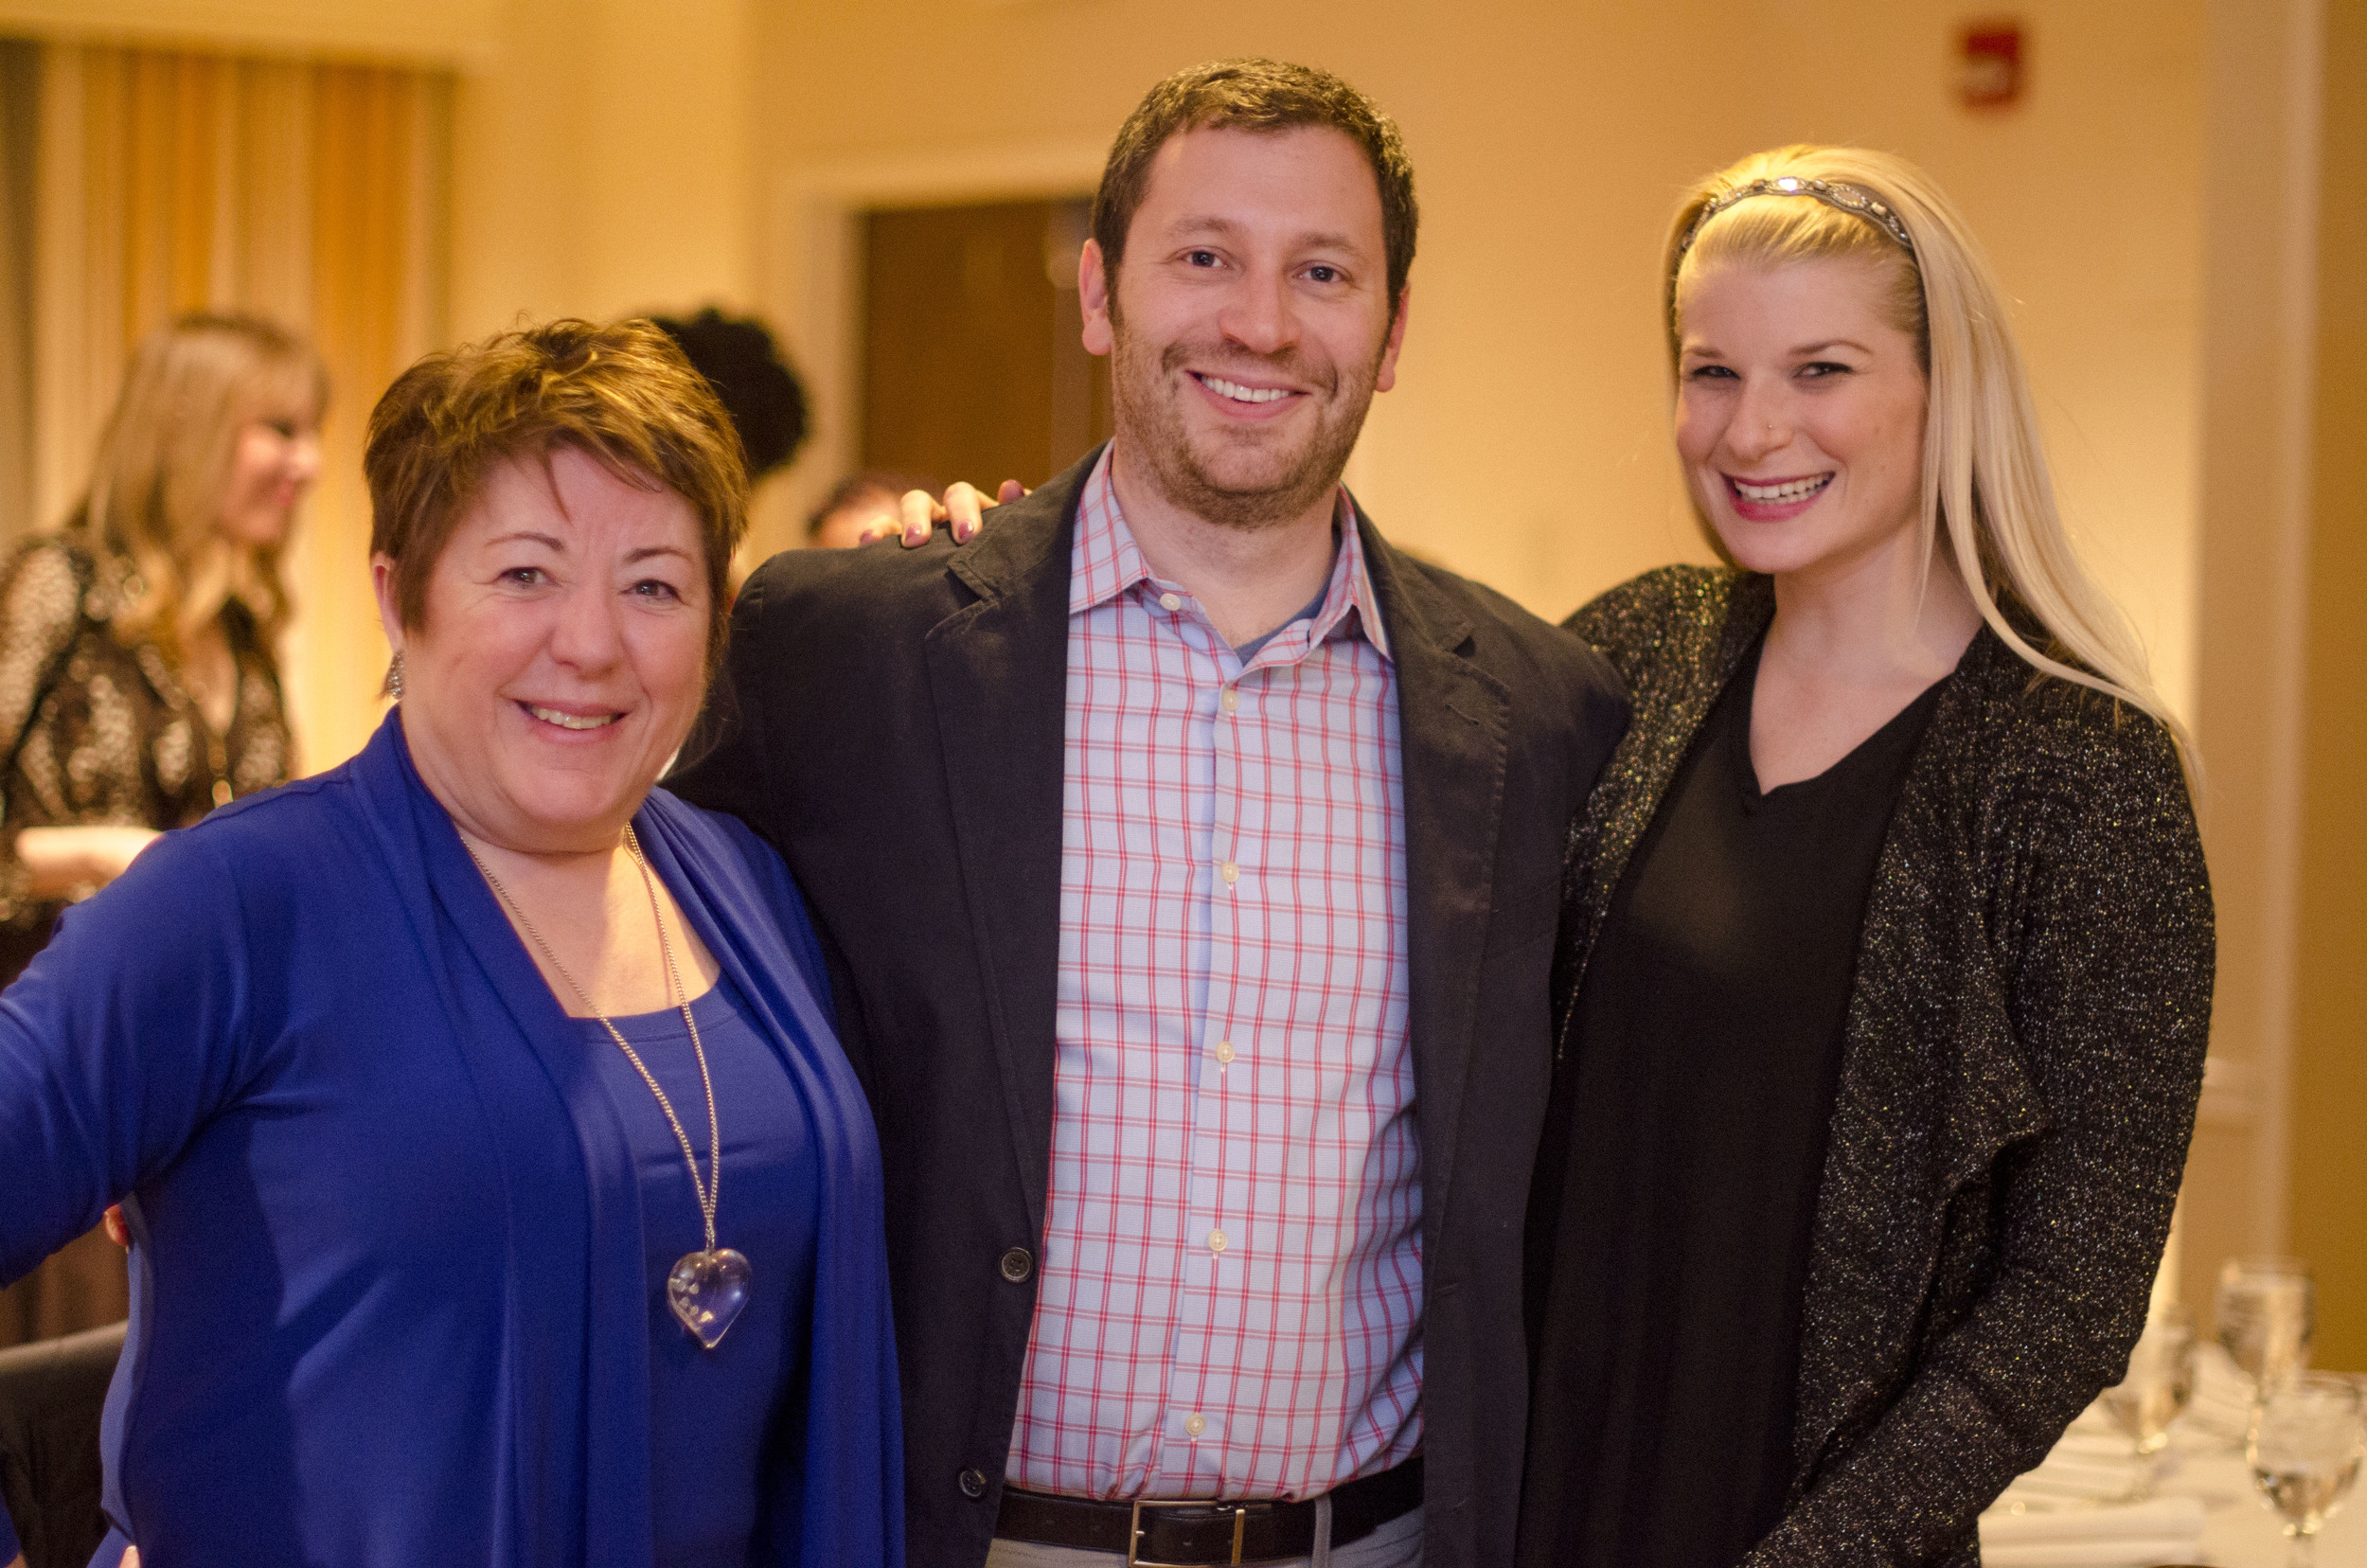 Three of Ruth's sponsors and colleagues - from L to R Pat Mussieux, Matthew Goldfarb, and Mara Glazer.